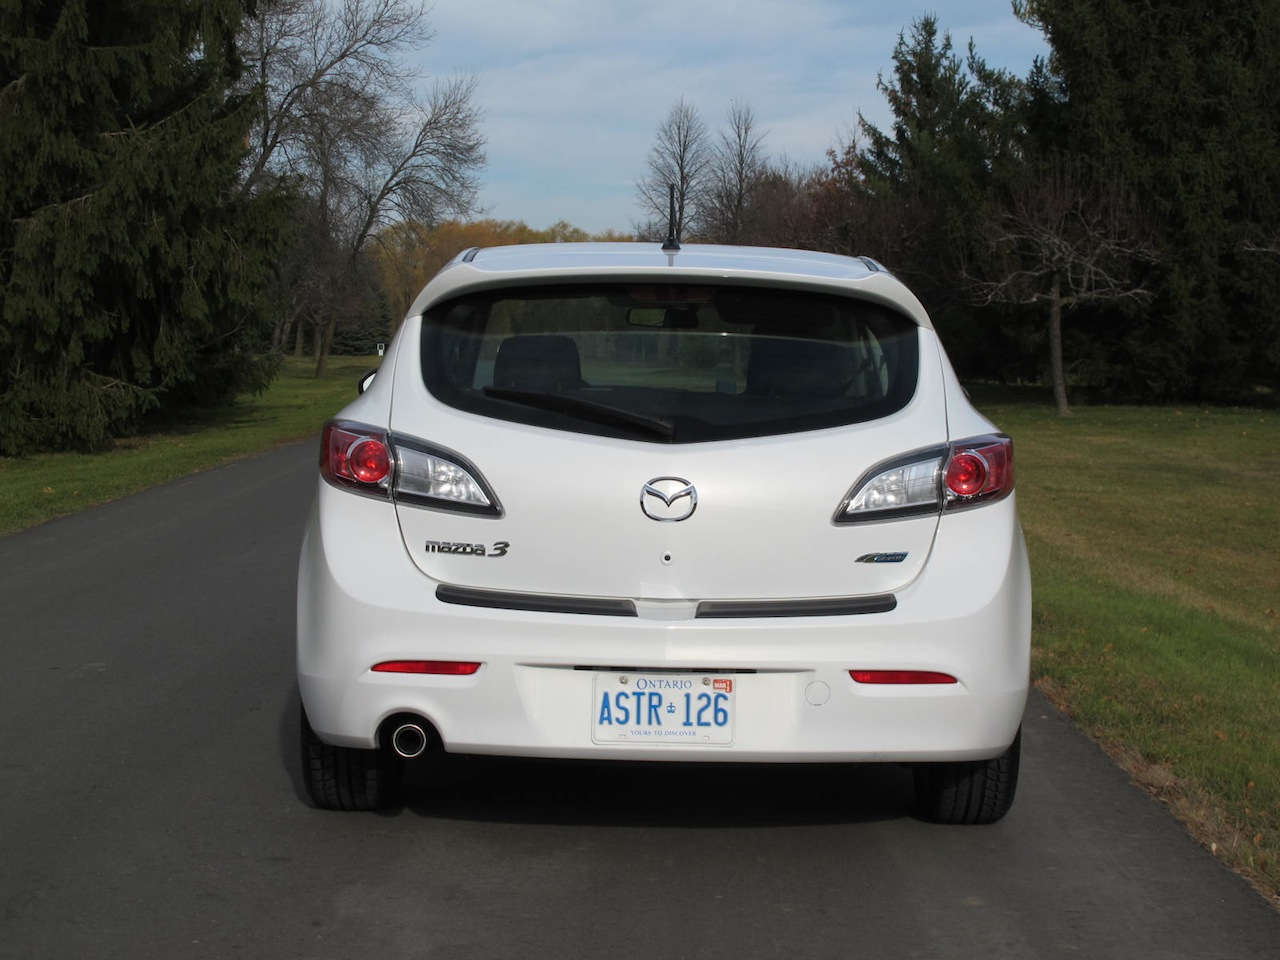 2012 Mazda3 Gs Review Cars Photos Test Drives And Reviews